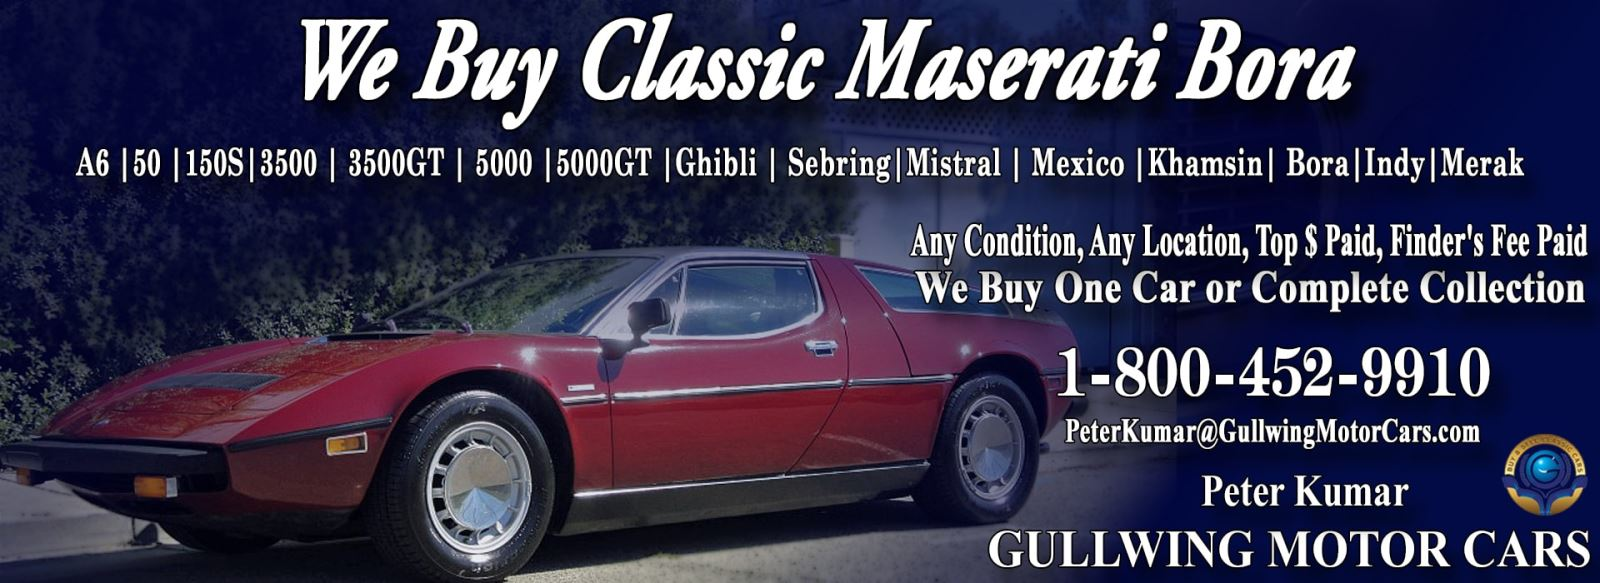 Classic Maserati Bora for sale, we buy vintage Maserati Bora. Call Peter Kumar. Gullwing Motor